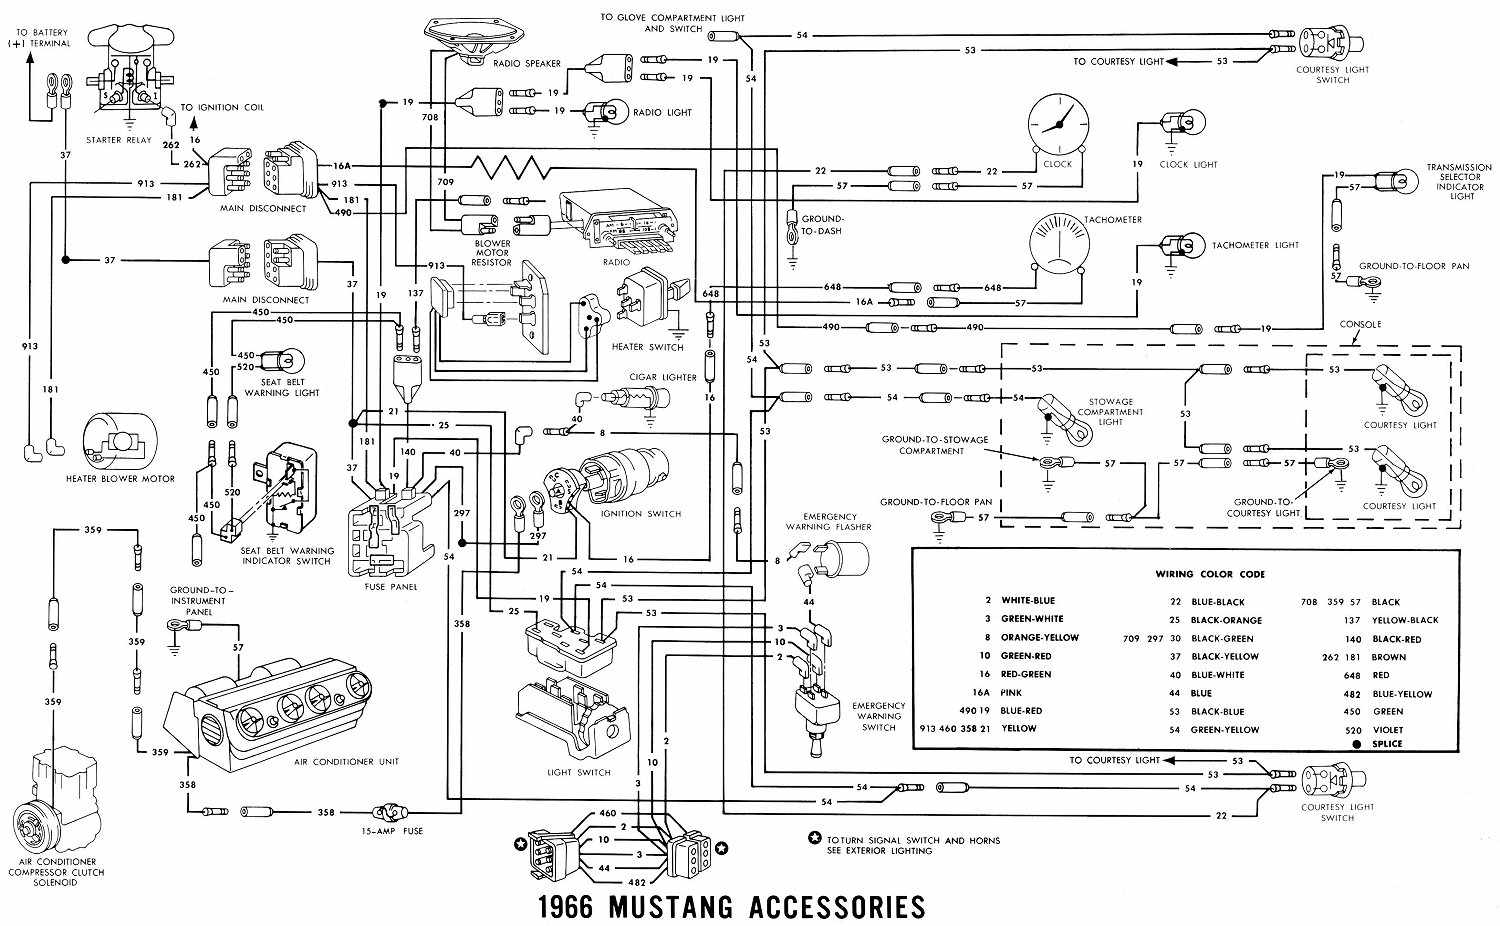 1971 Ford Mustang Wiring Diagram Real 72 Datsun 240z Ignition Data Schema U2022 Rh Serasa Co 1970